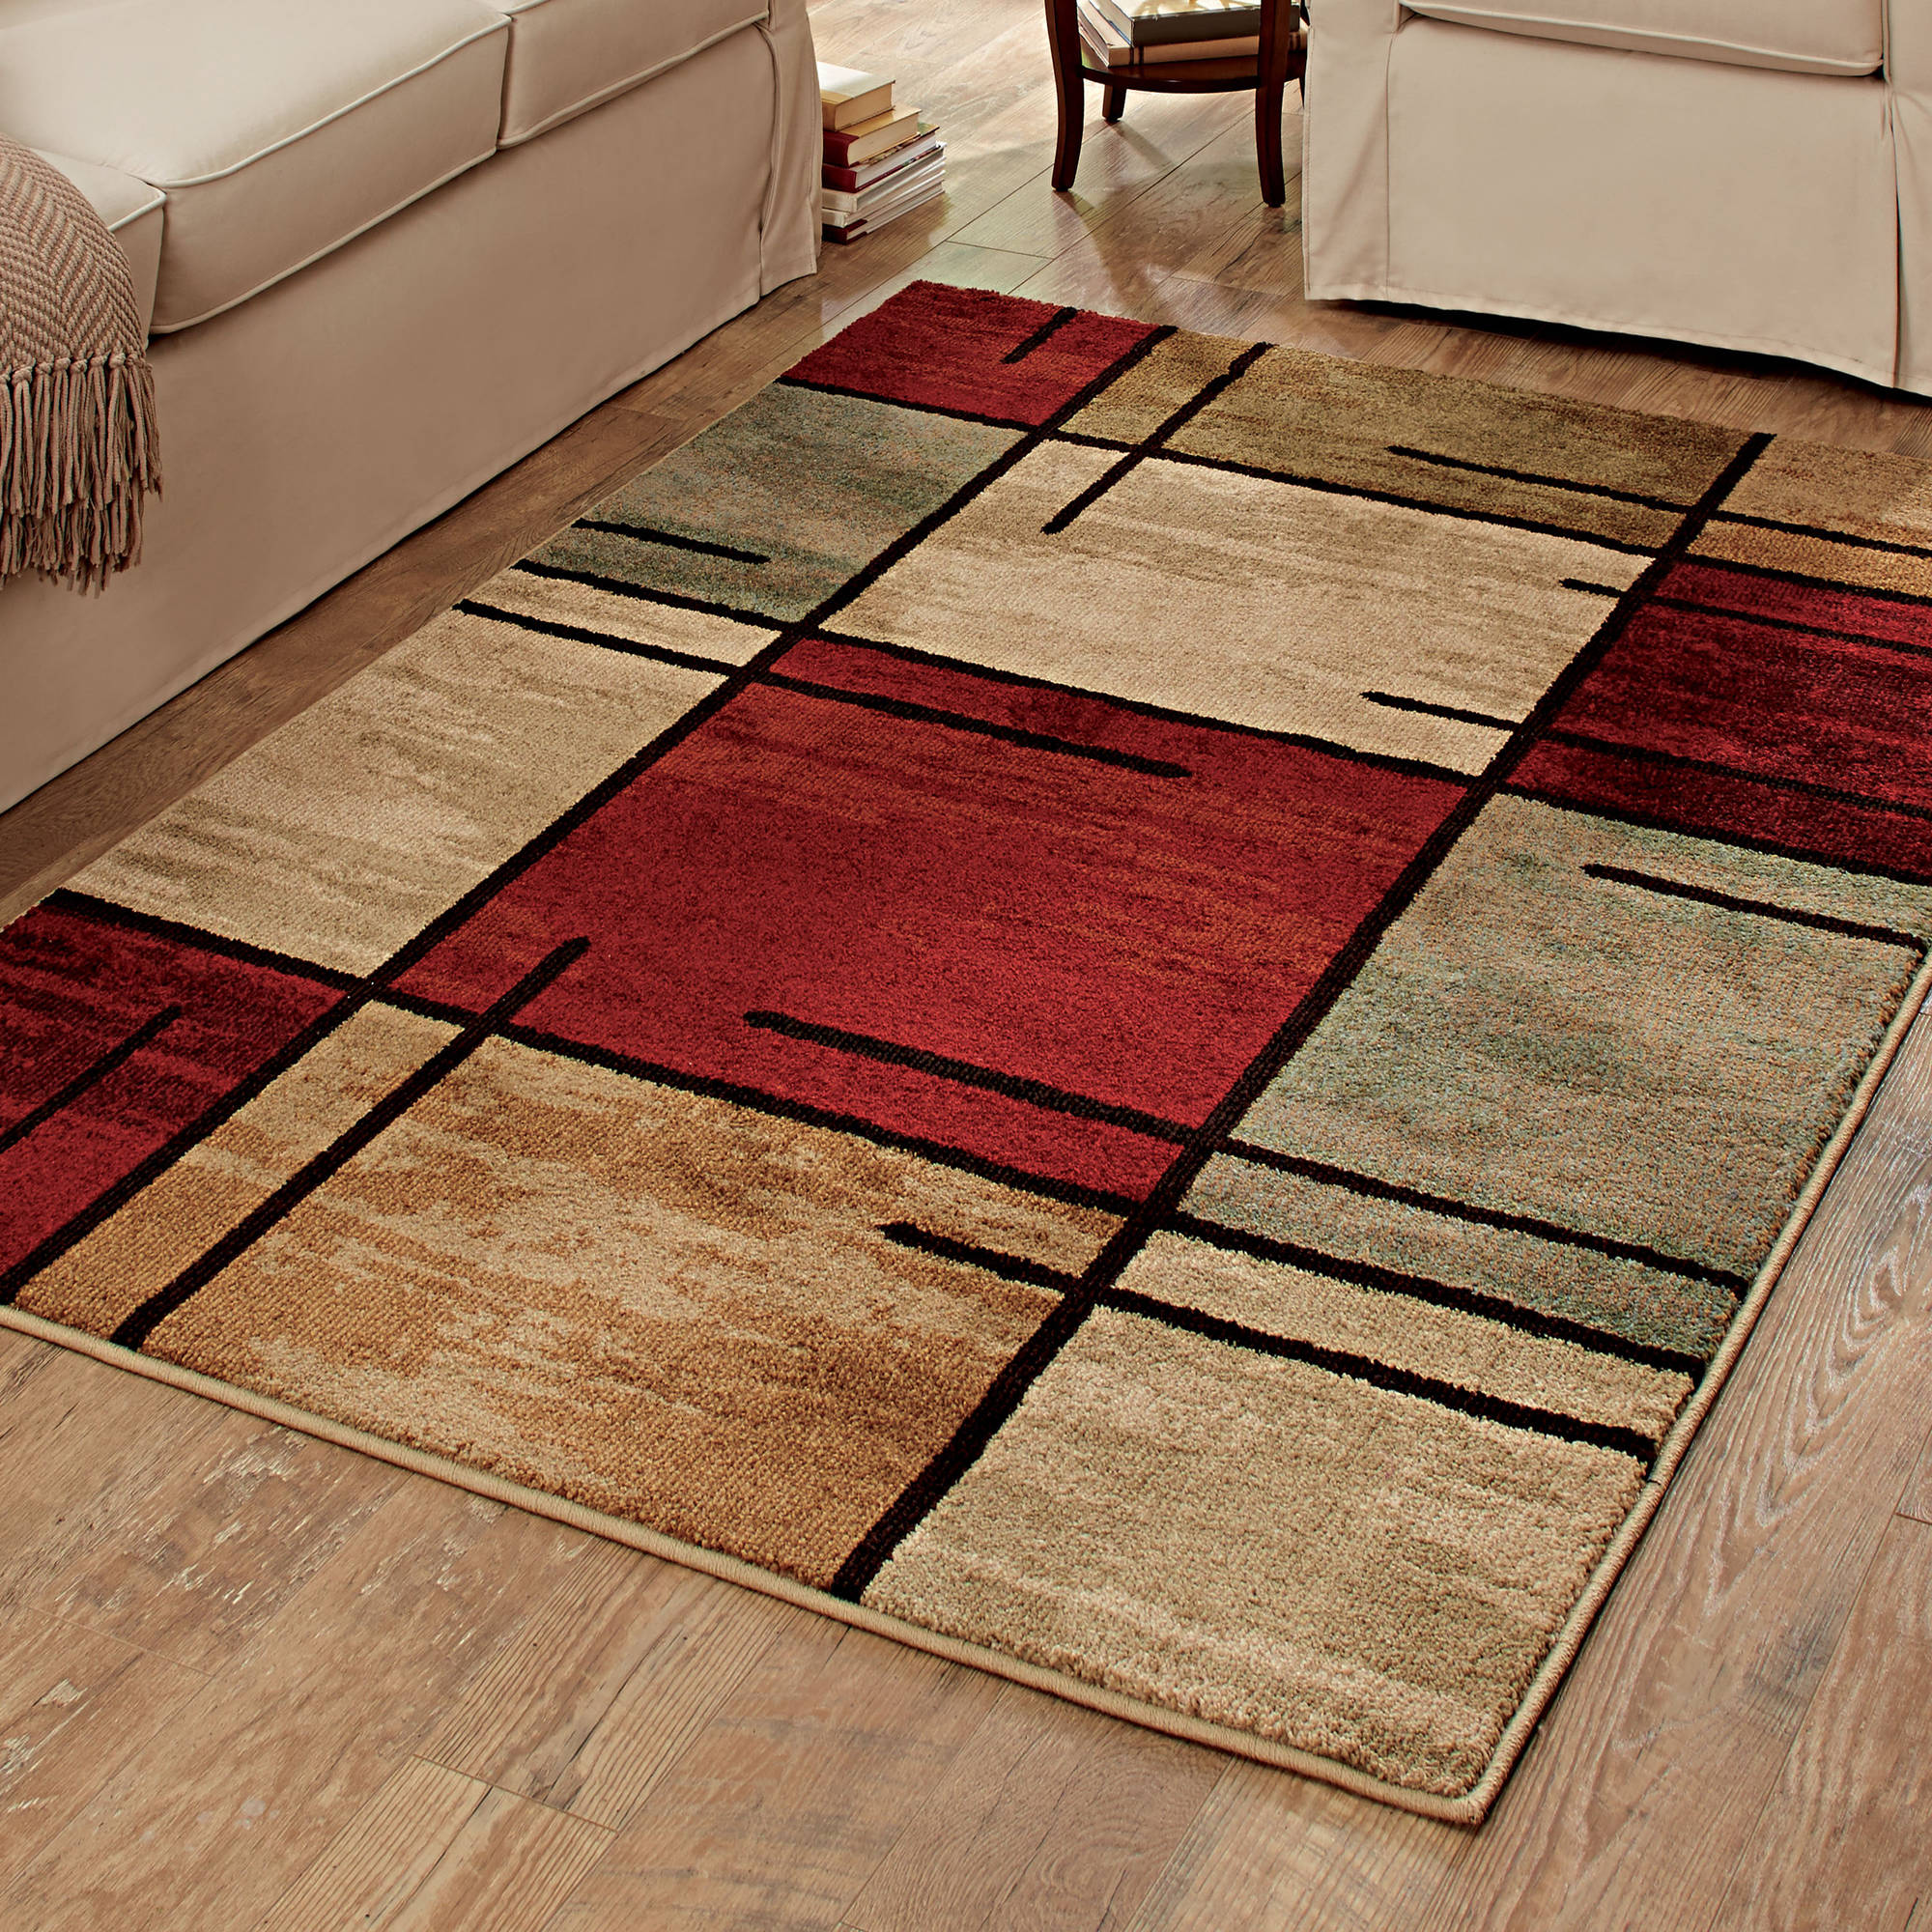 Better homes gardens spice grid area rug walmart com